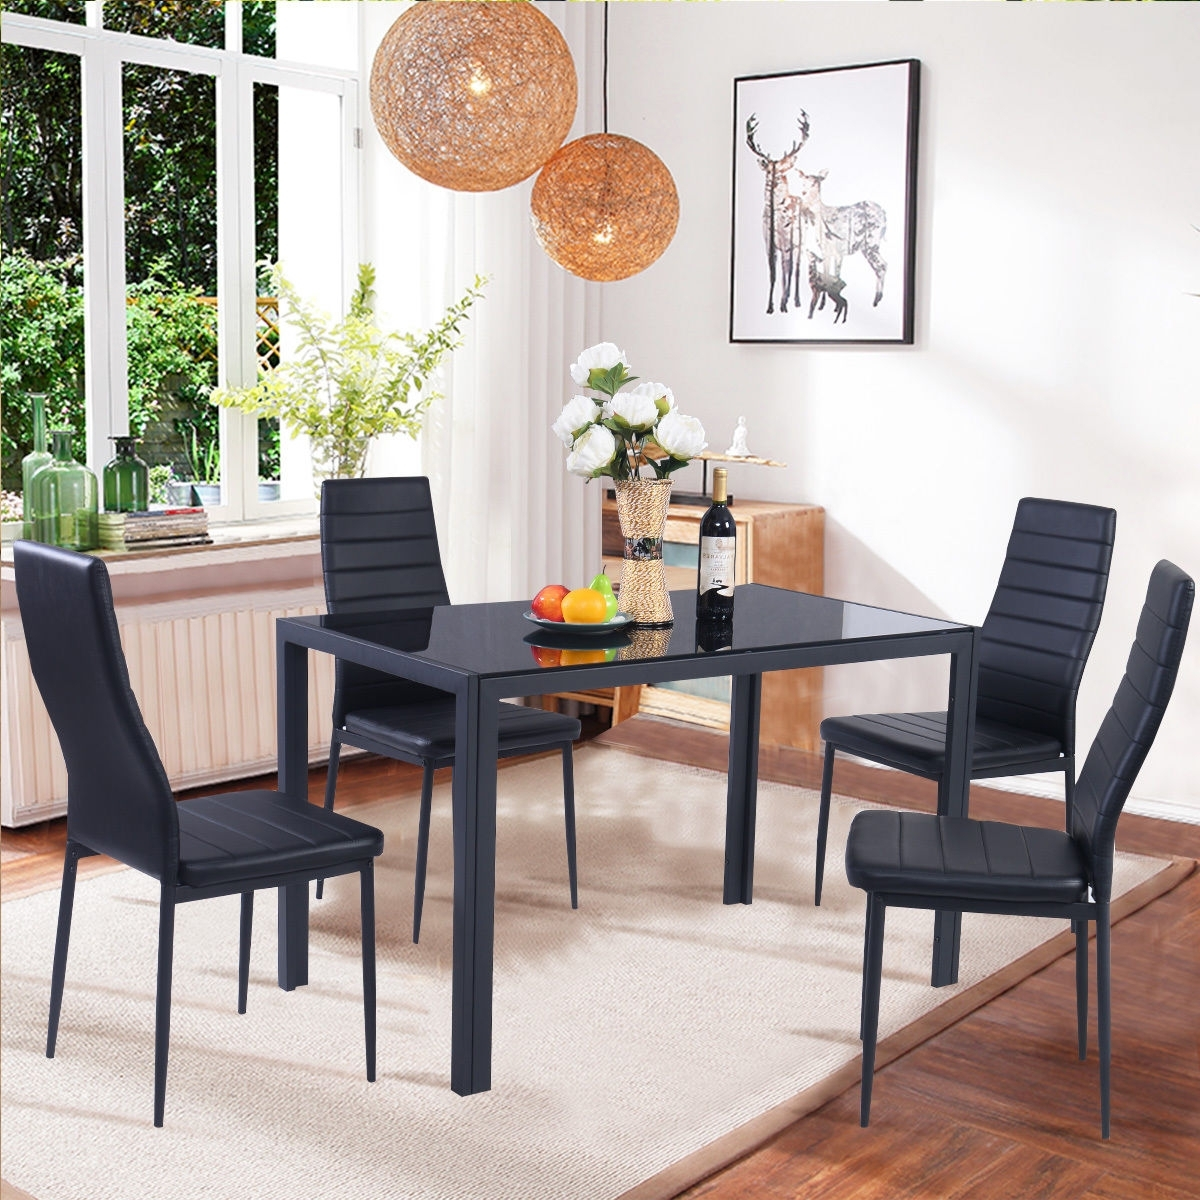 Dining Tables Chairs Pertaining To 2018 Costway 5 Piece Kitchen Dining Set Glass Metal Table And 4 Chairs (View 9 of 25)